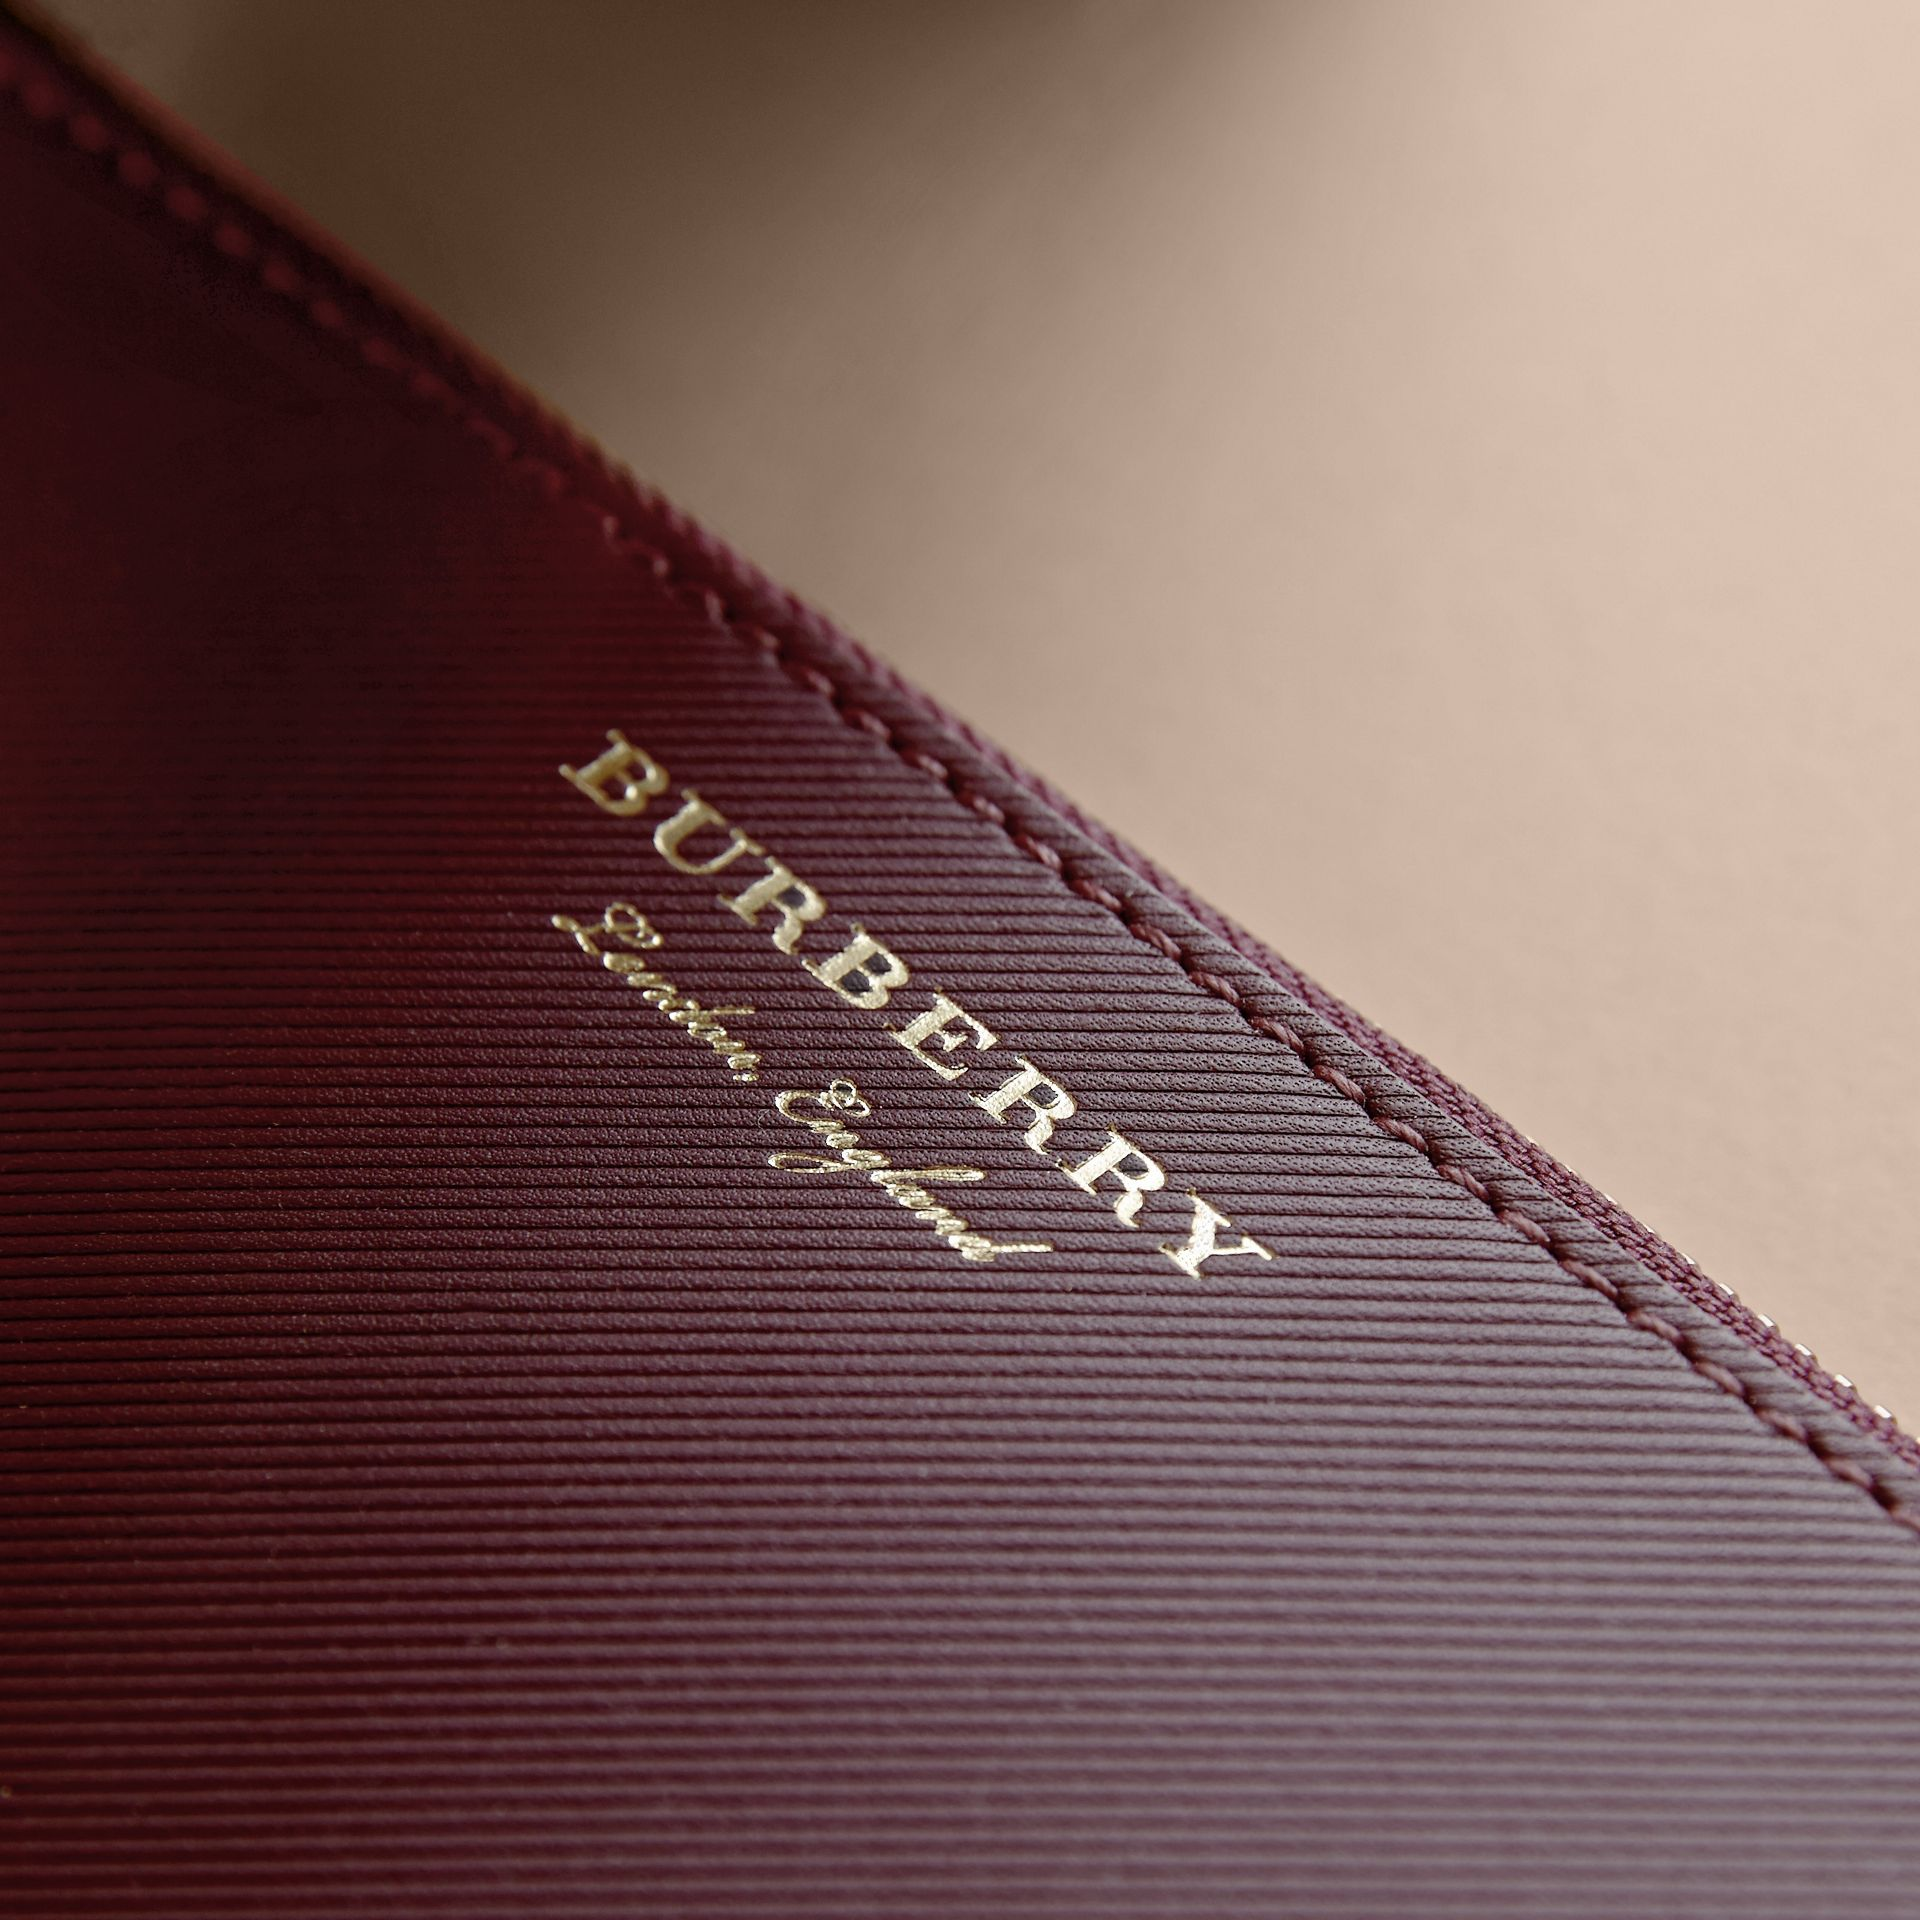 Two-tone Trench Leather Travel Wallet in Wine - Men | Burberry - gallery image 2